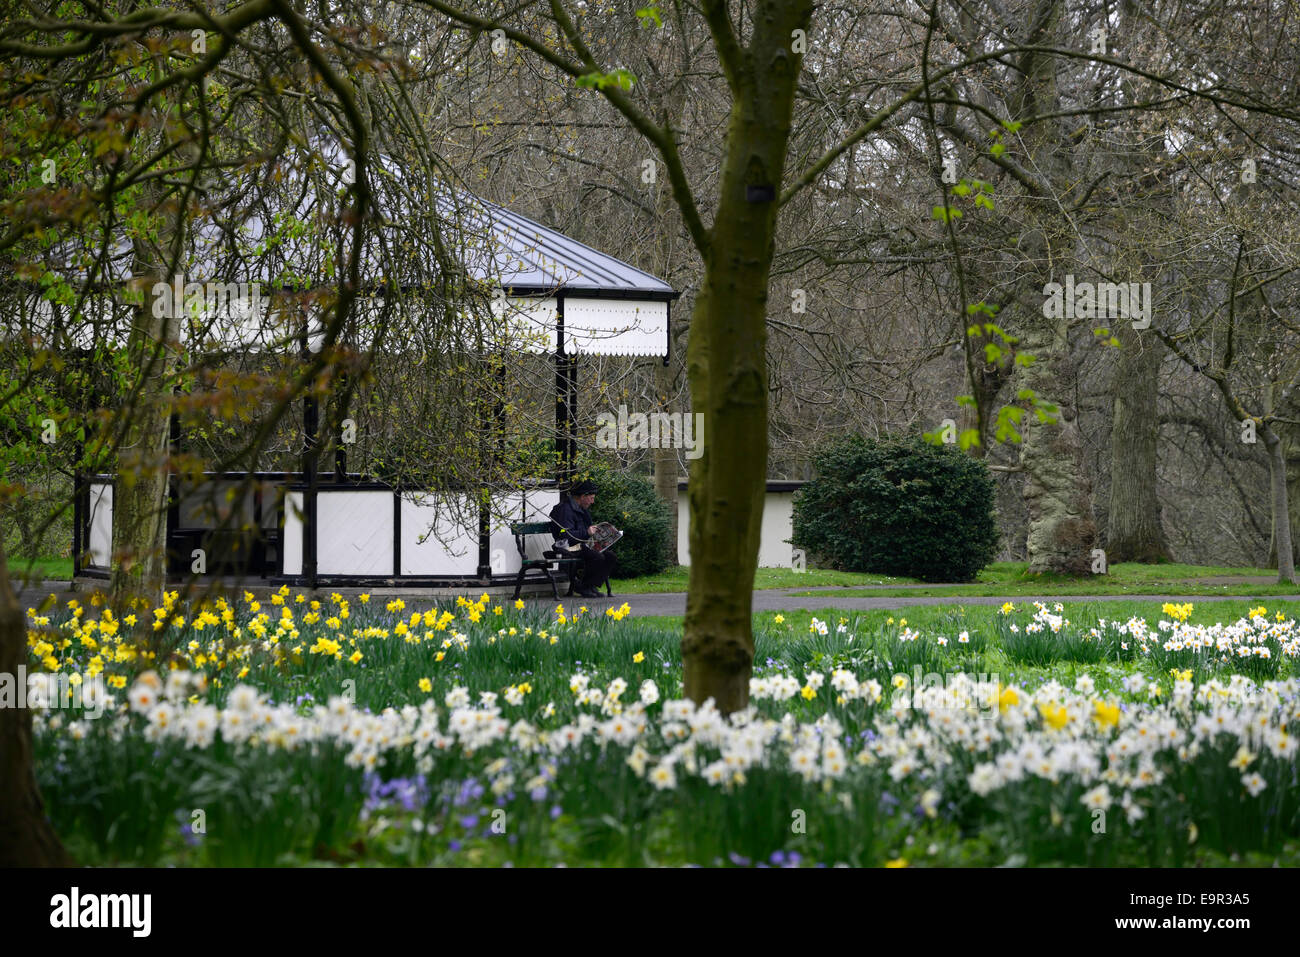 man read reading paper outdoors bandstand botanic gardens spring flowers flowering bloom RM Floral - Stock Image